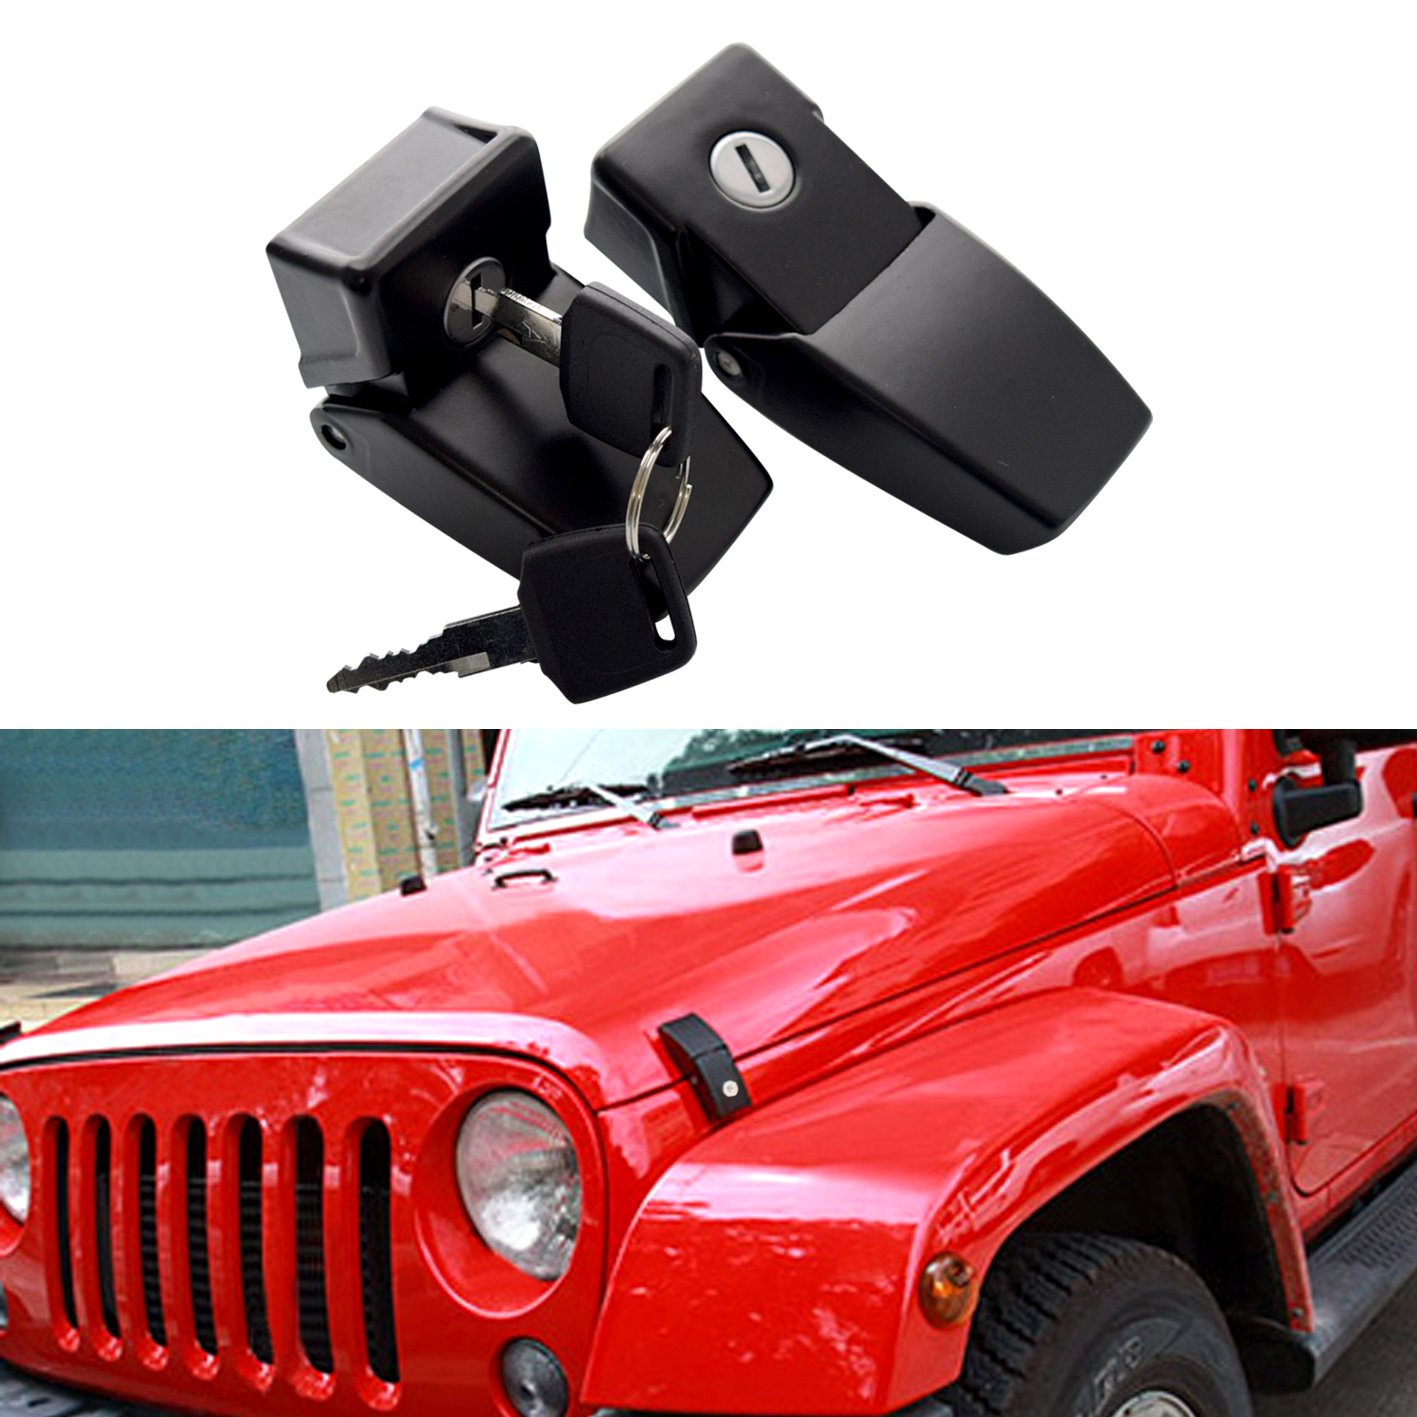 DIYTuning Front Anti-Thief Security a Pair Locking Hood Look Catch Latches Kit for Jeep Wrangler JK JKU Unlimited Rubicon Sahara X Off Road Sport Exterior Accessories Parts 2007-2017